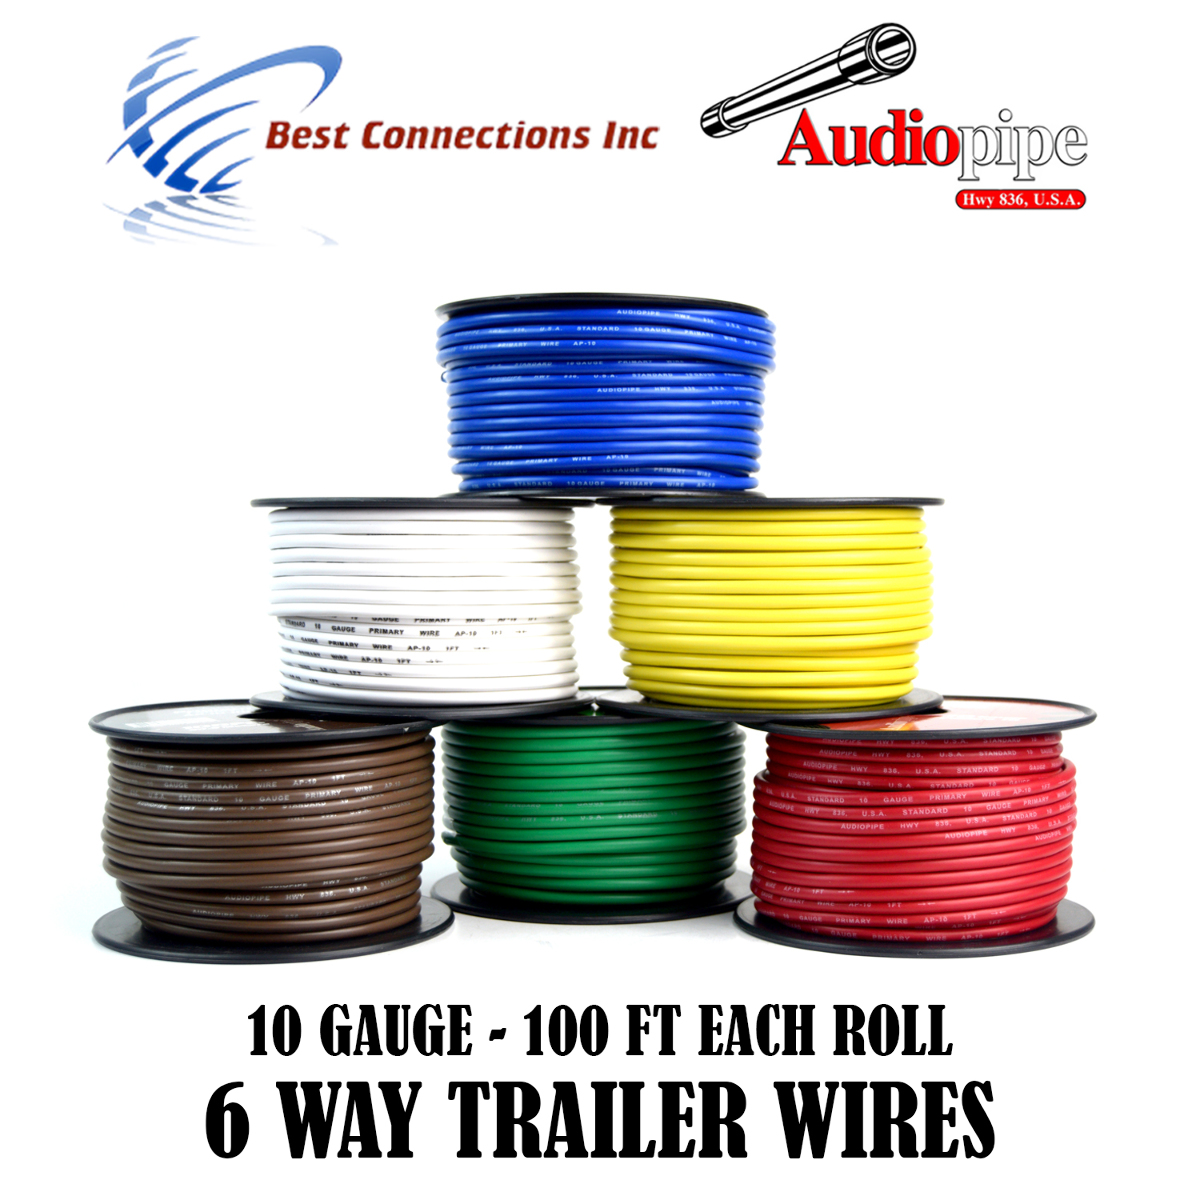 6 Way Trailer Wire Light Cable for Harness LED 100ft Each Roll 10 Gauge 6 Rolls